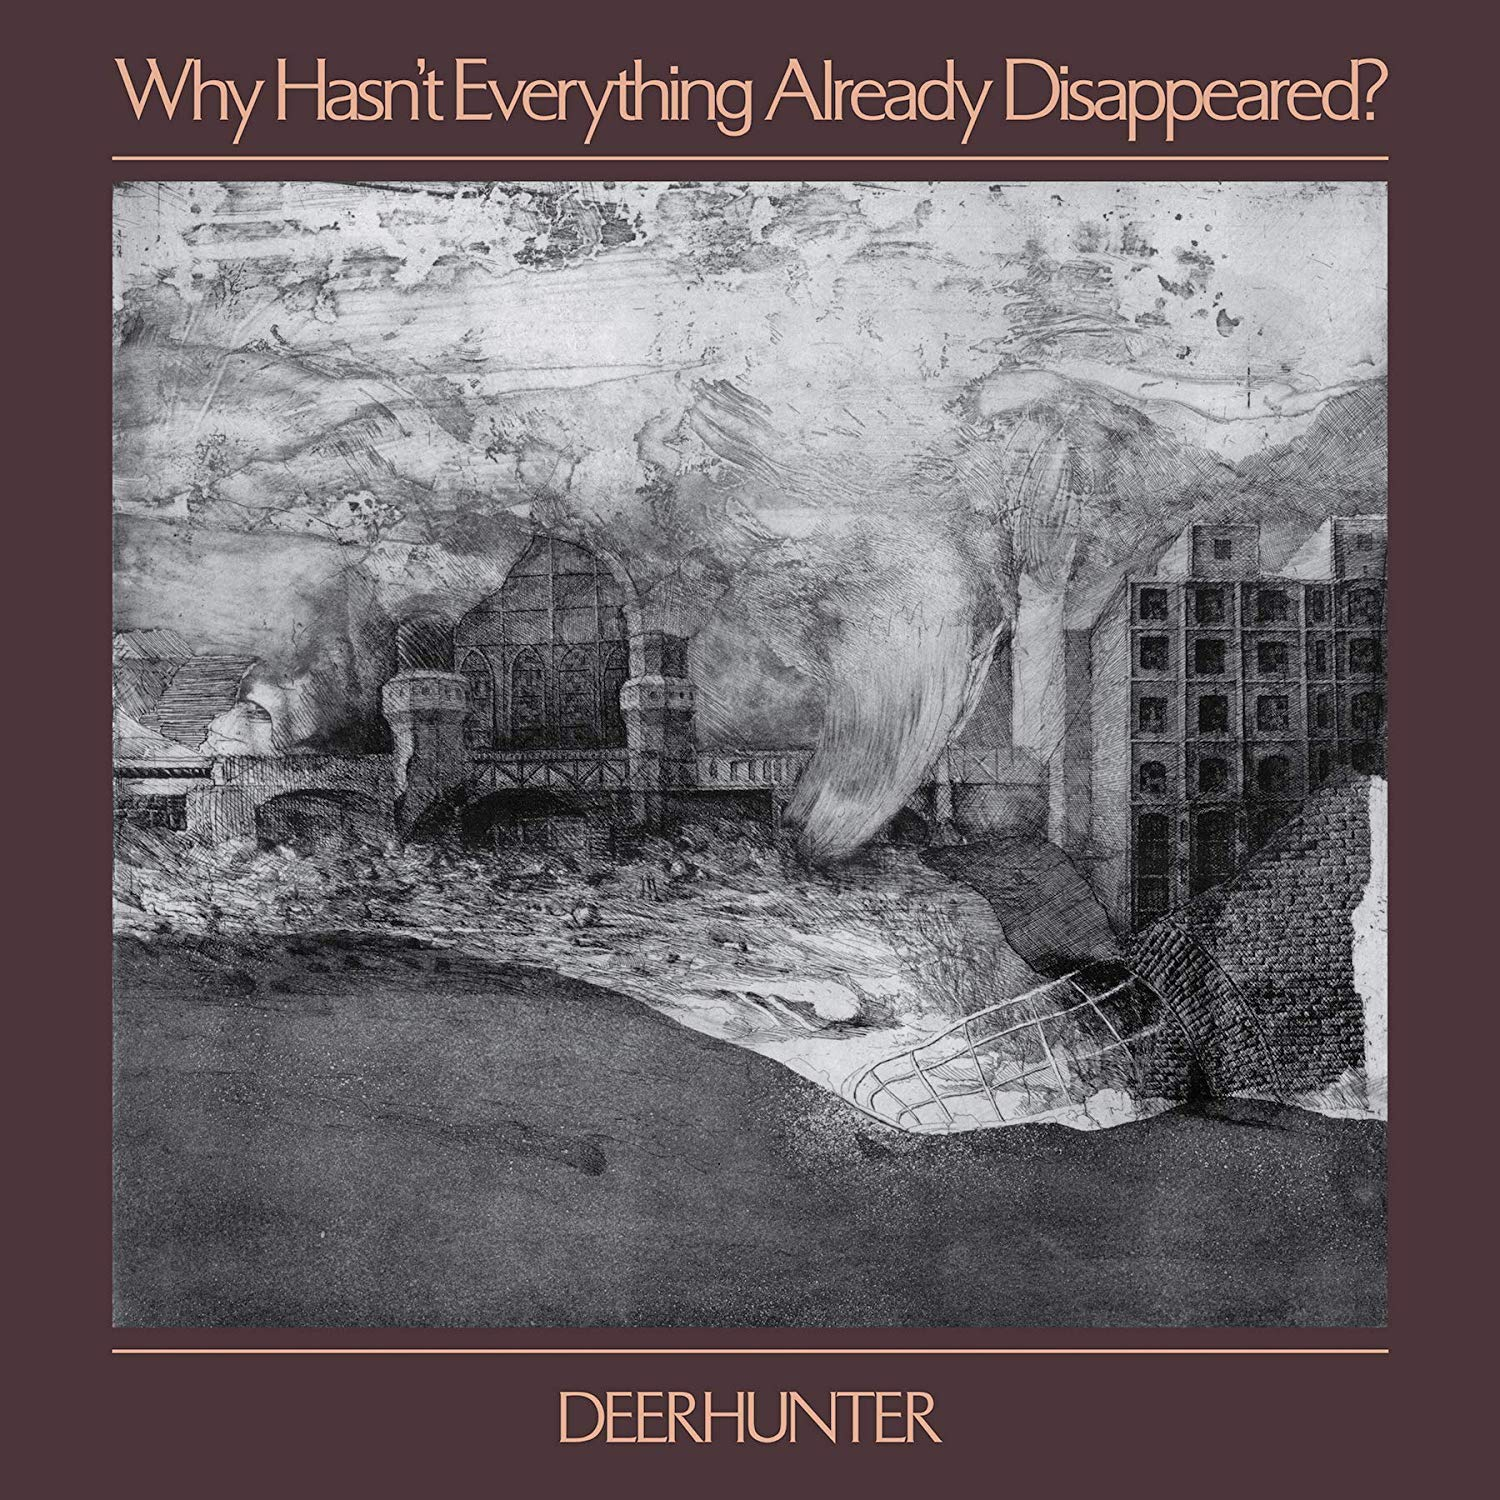 Deerhunter - Why Hasn't Everything Already Disappeared? [LP]